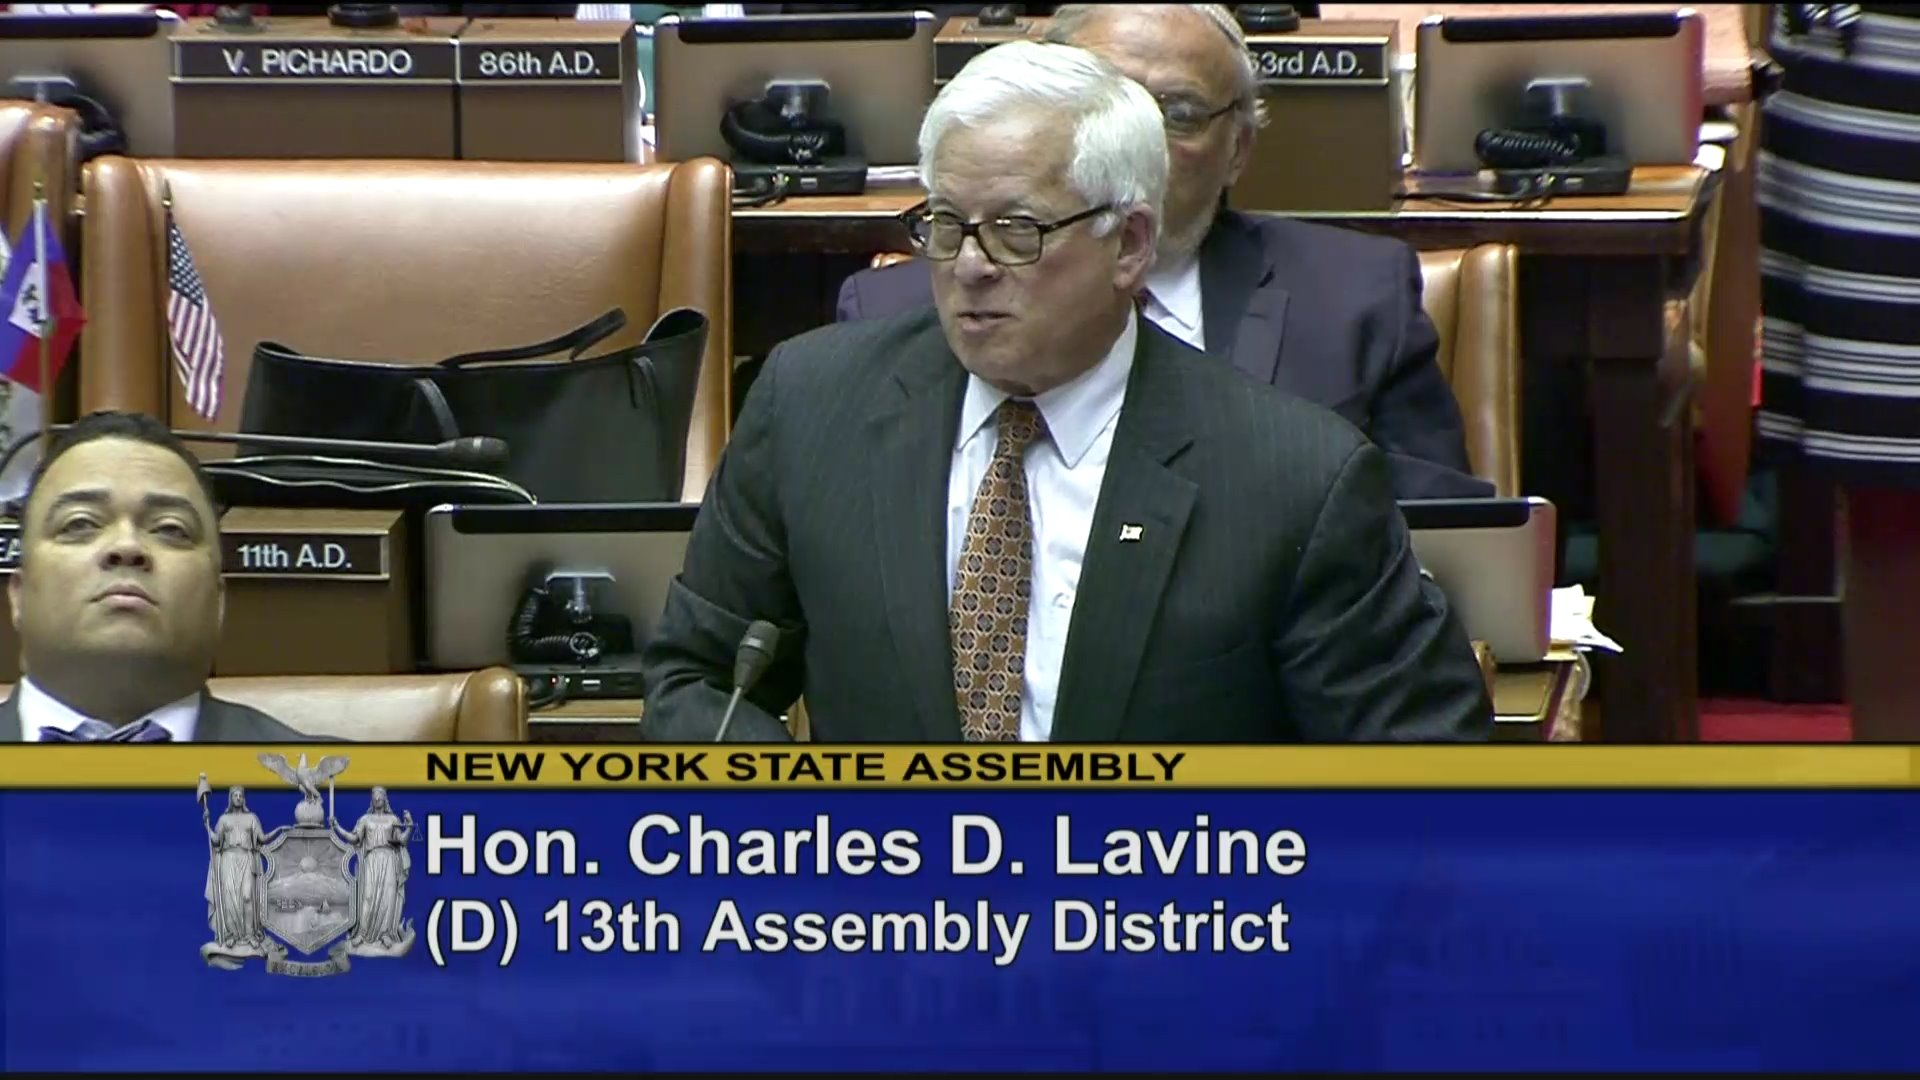 Lavine Speaks about Environmental Protection in New York State